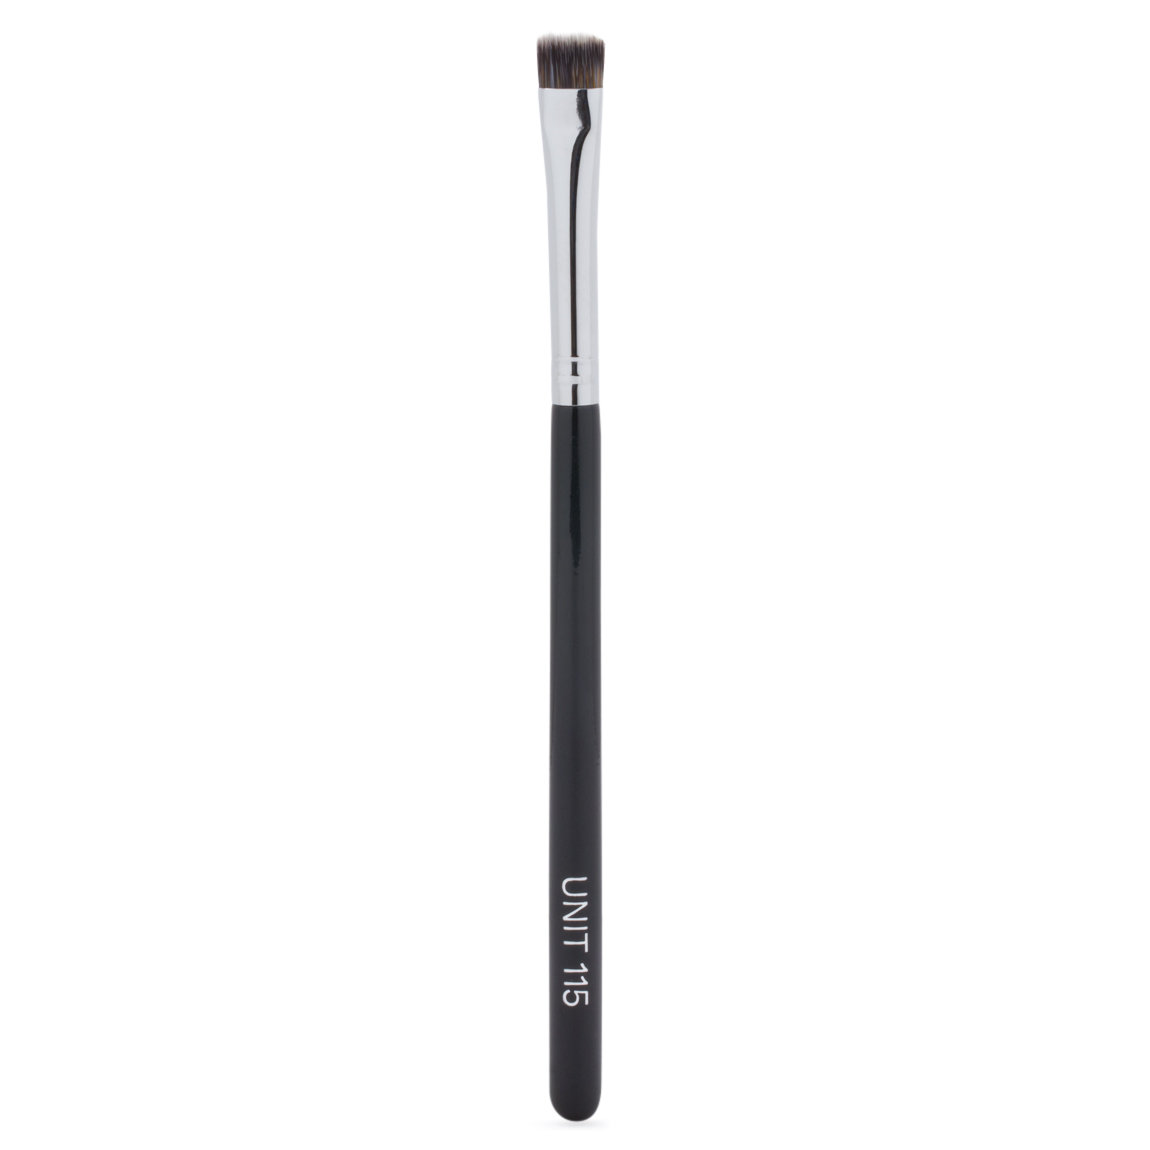 UNIT 115 Eye Brush